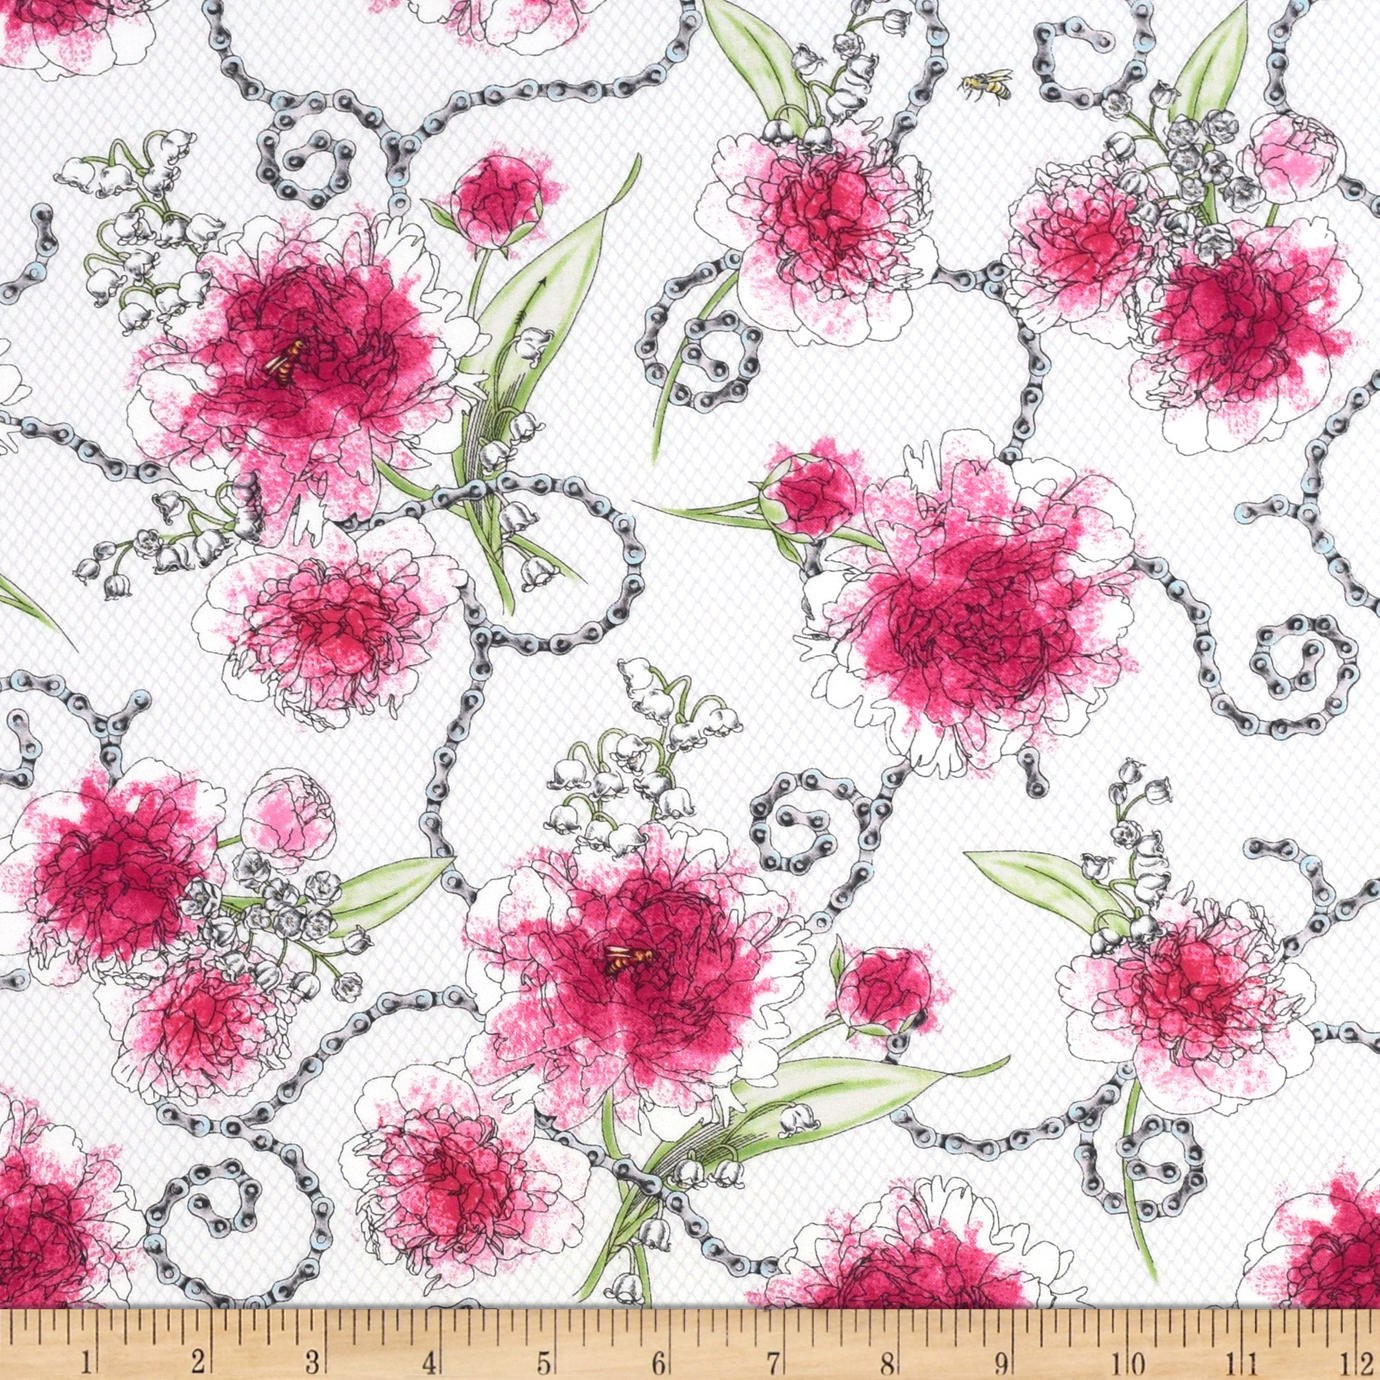 Sweet Rebellion Peonies White Fabric by Quilting Treasures in USA